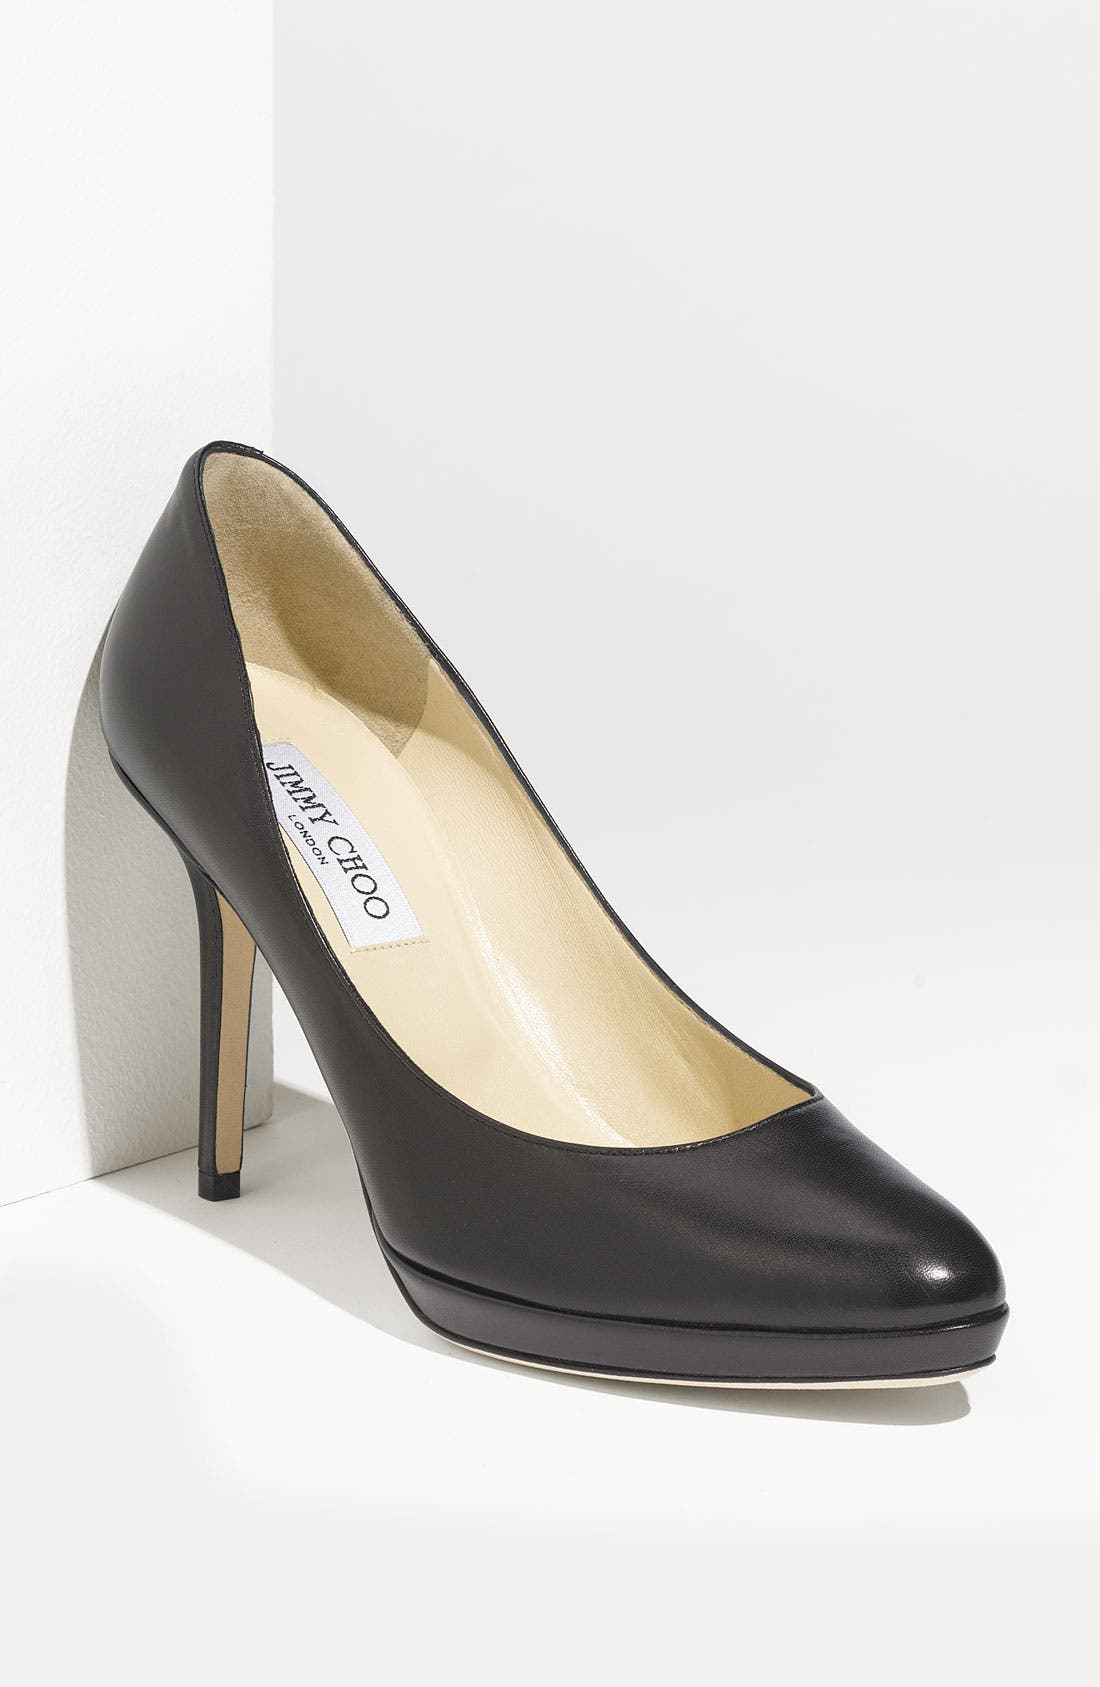 Main Image - Jimmy Choo 'Aimee' Pump